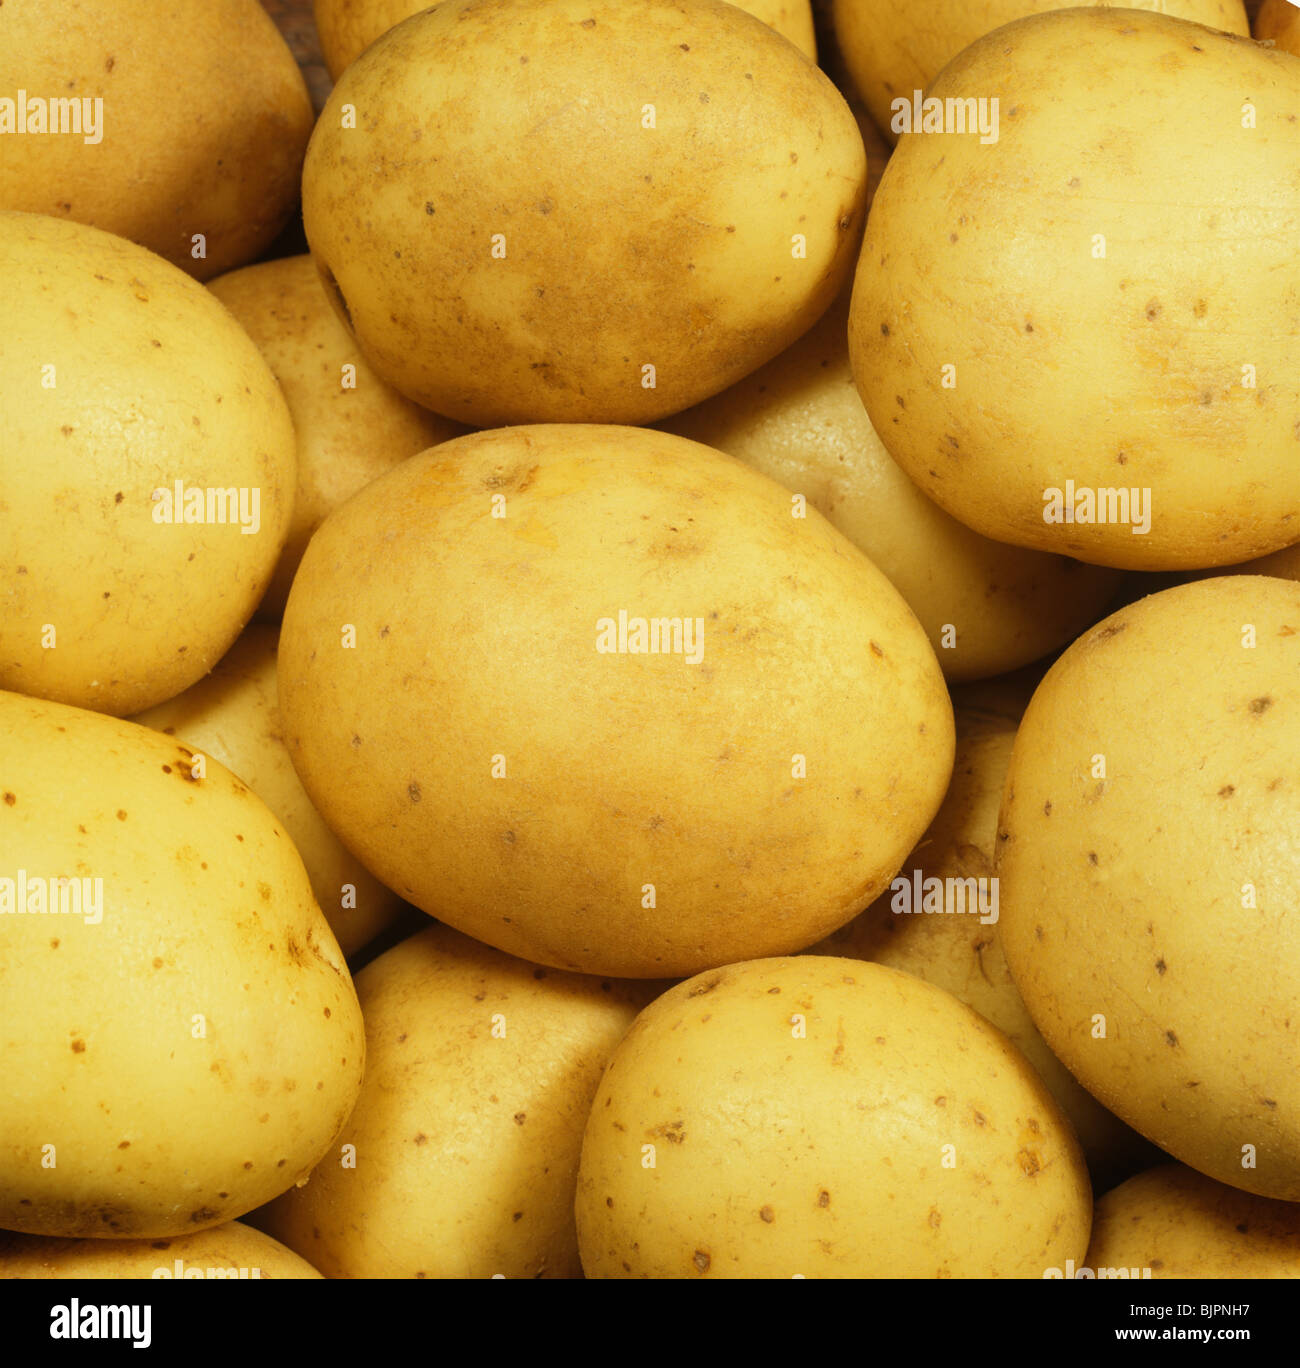 Tubers of Maris Piper potatoes ex shop or supermarket - Stock Image